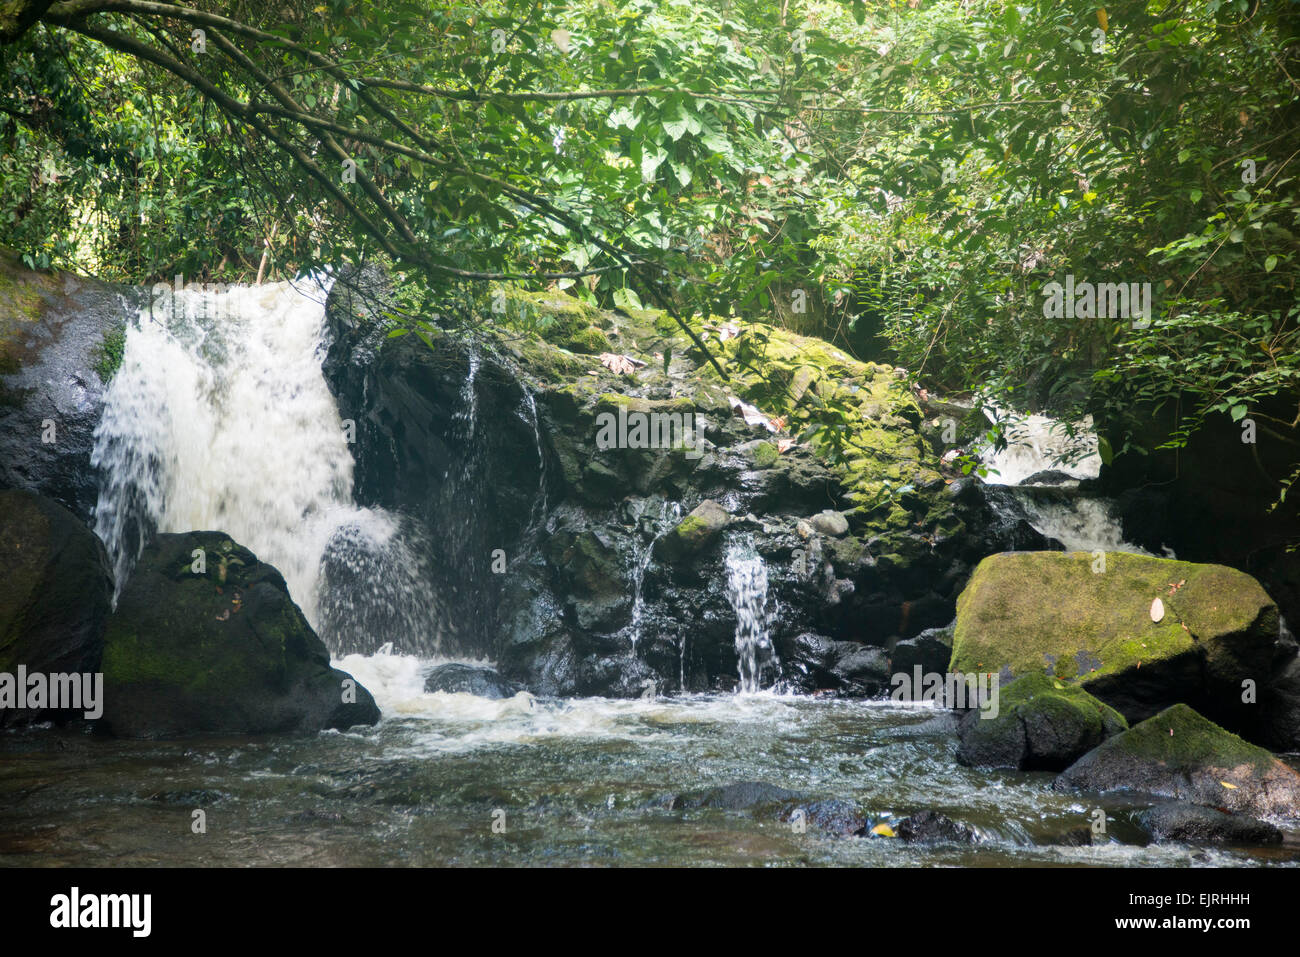 Raleigh waterfall, Central Suriname Nature Reserve, Suriname - Stock Image